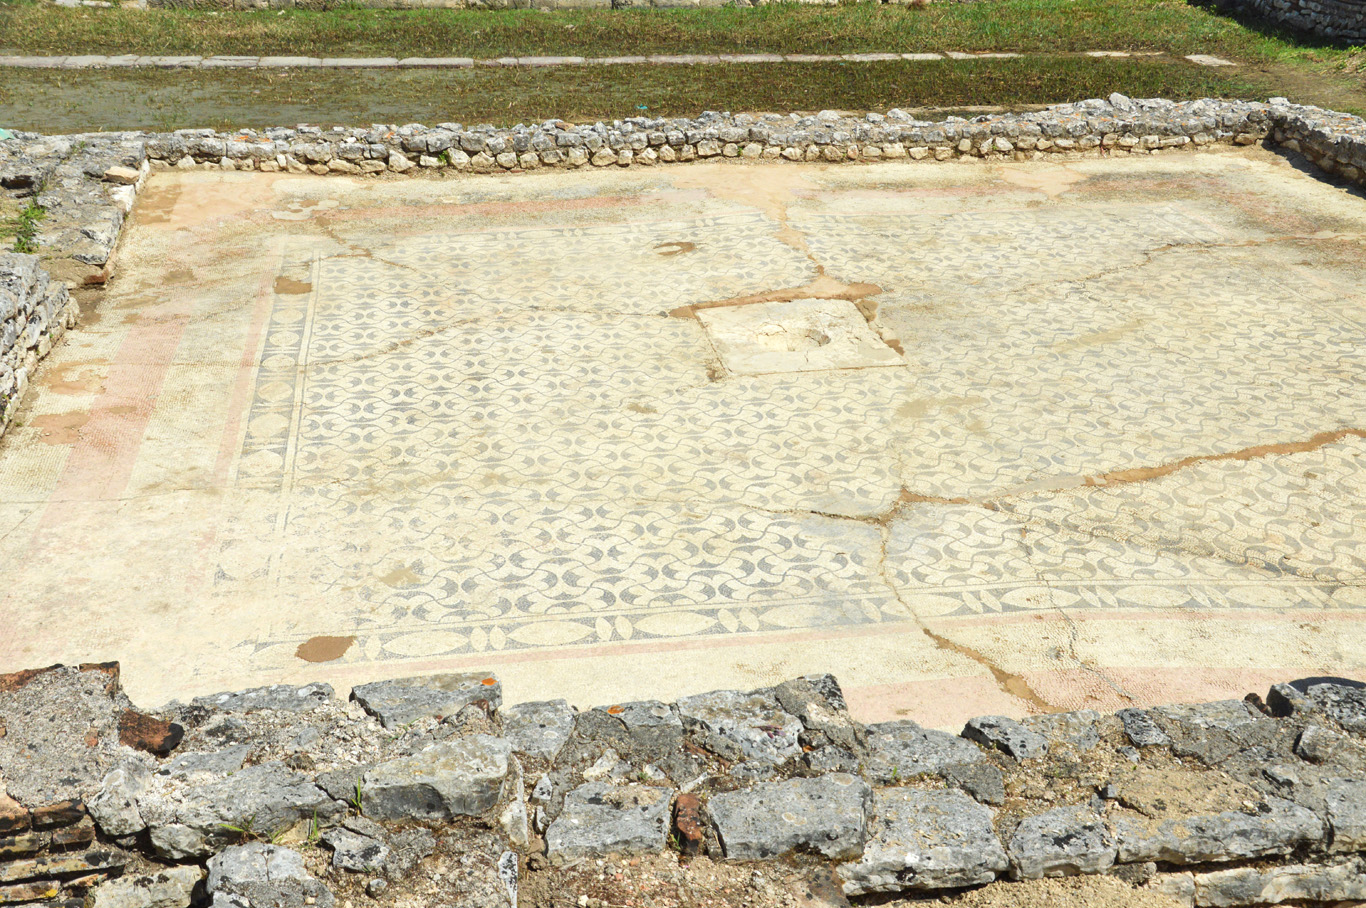 One of the mosaics in Butrint